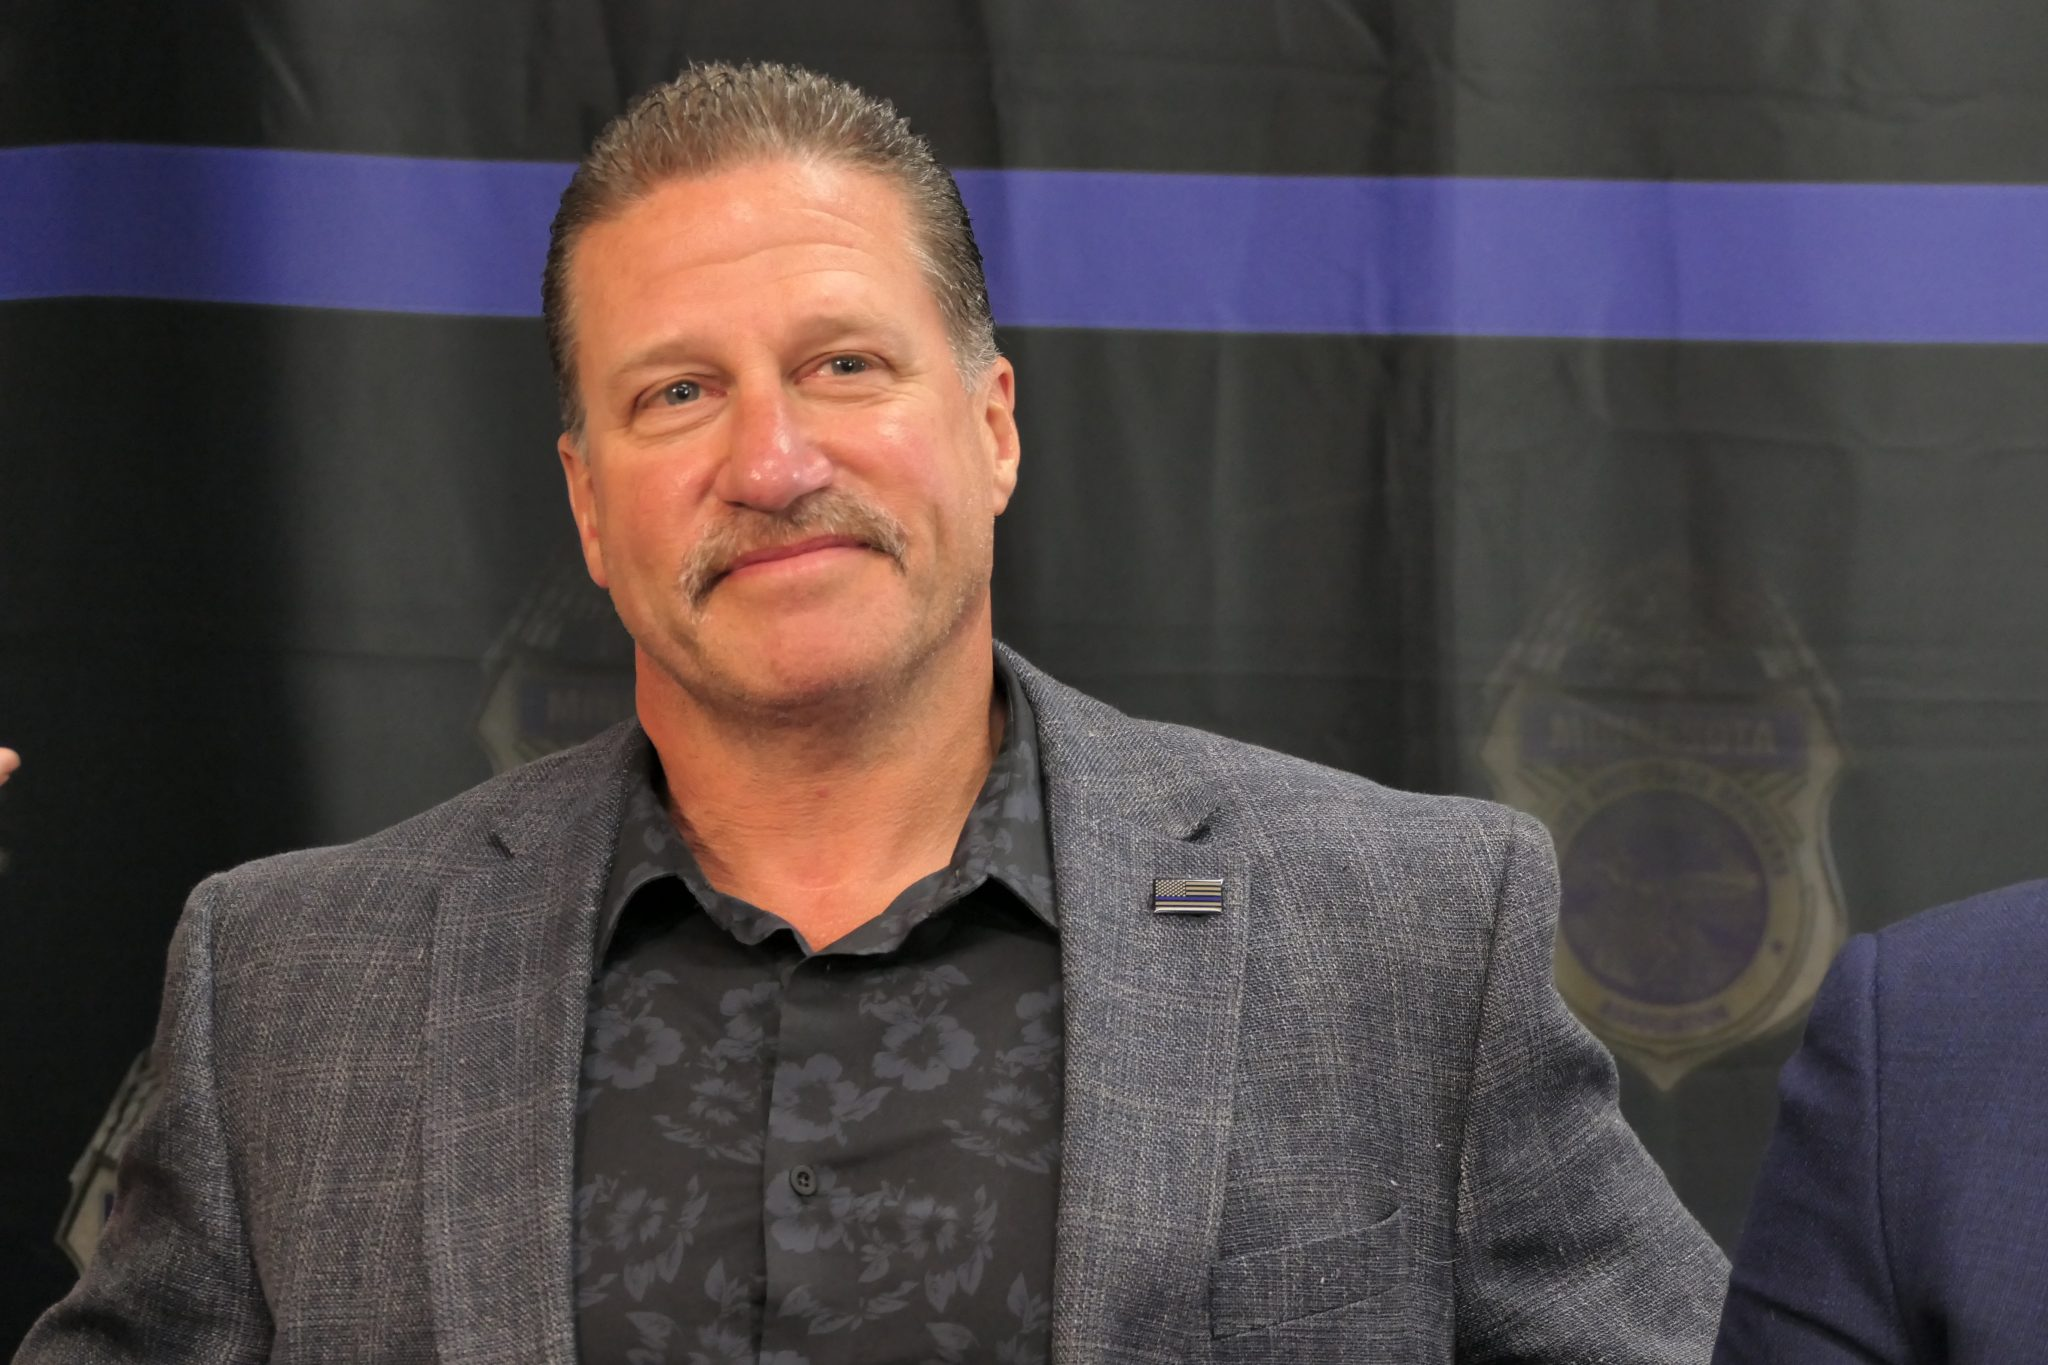 Minneapolis Police Federation President Bob Kroll to retire this month